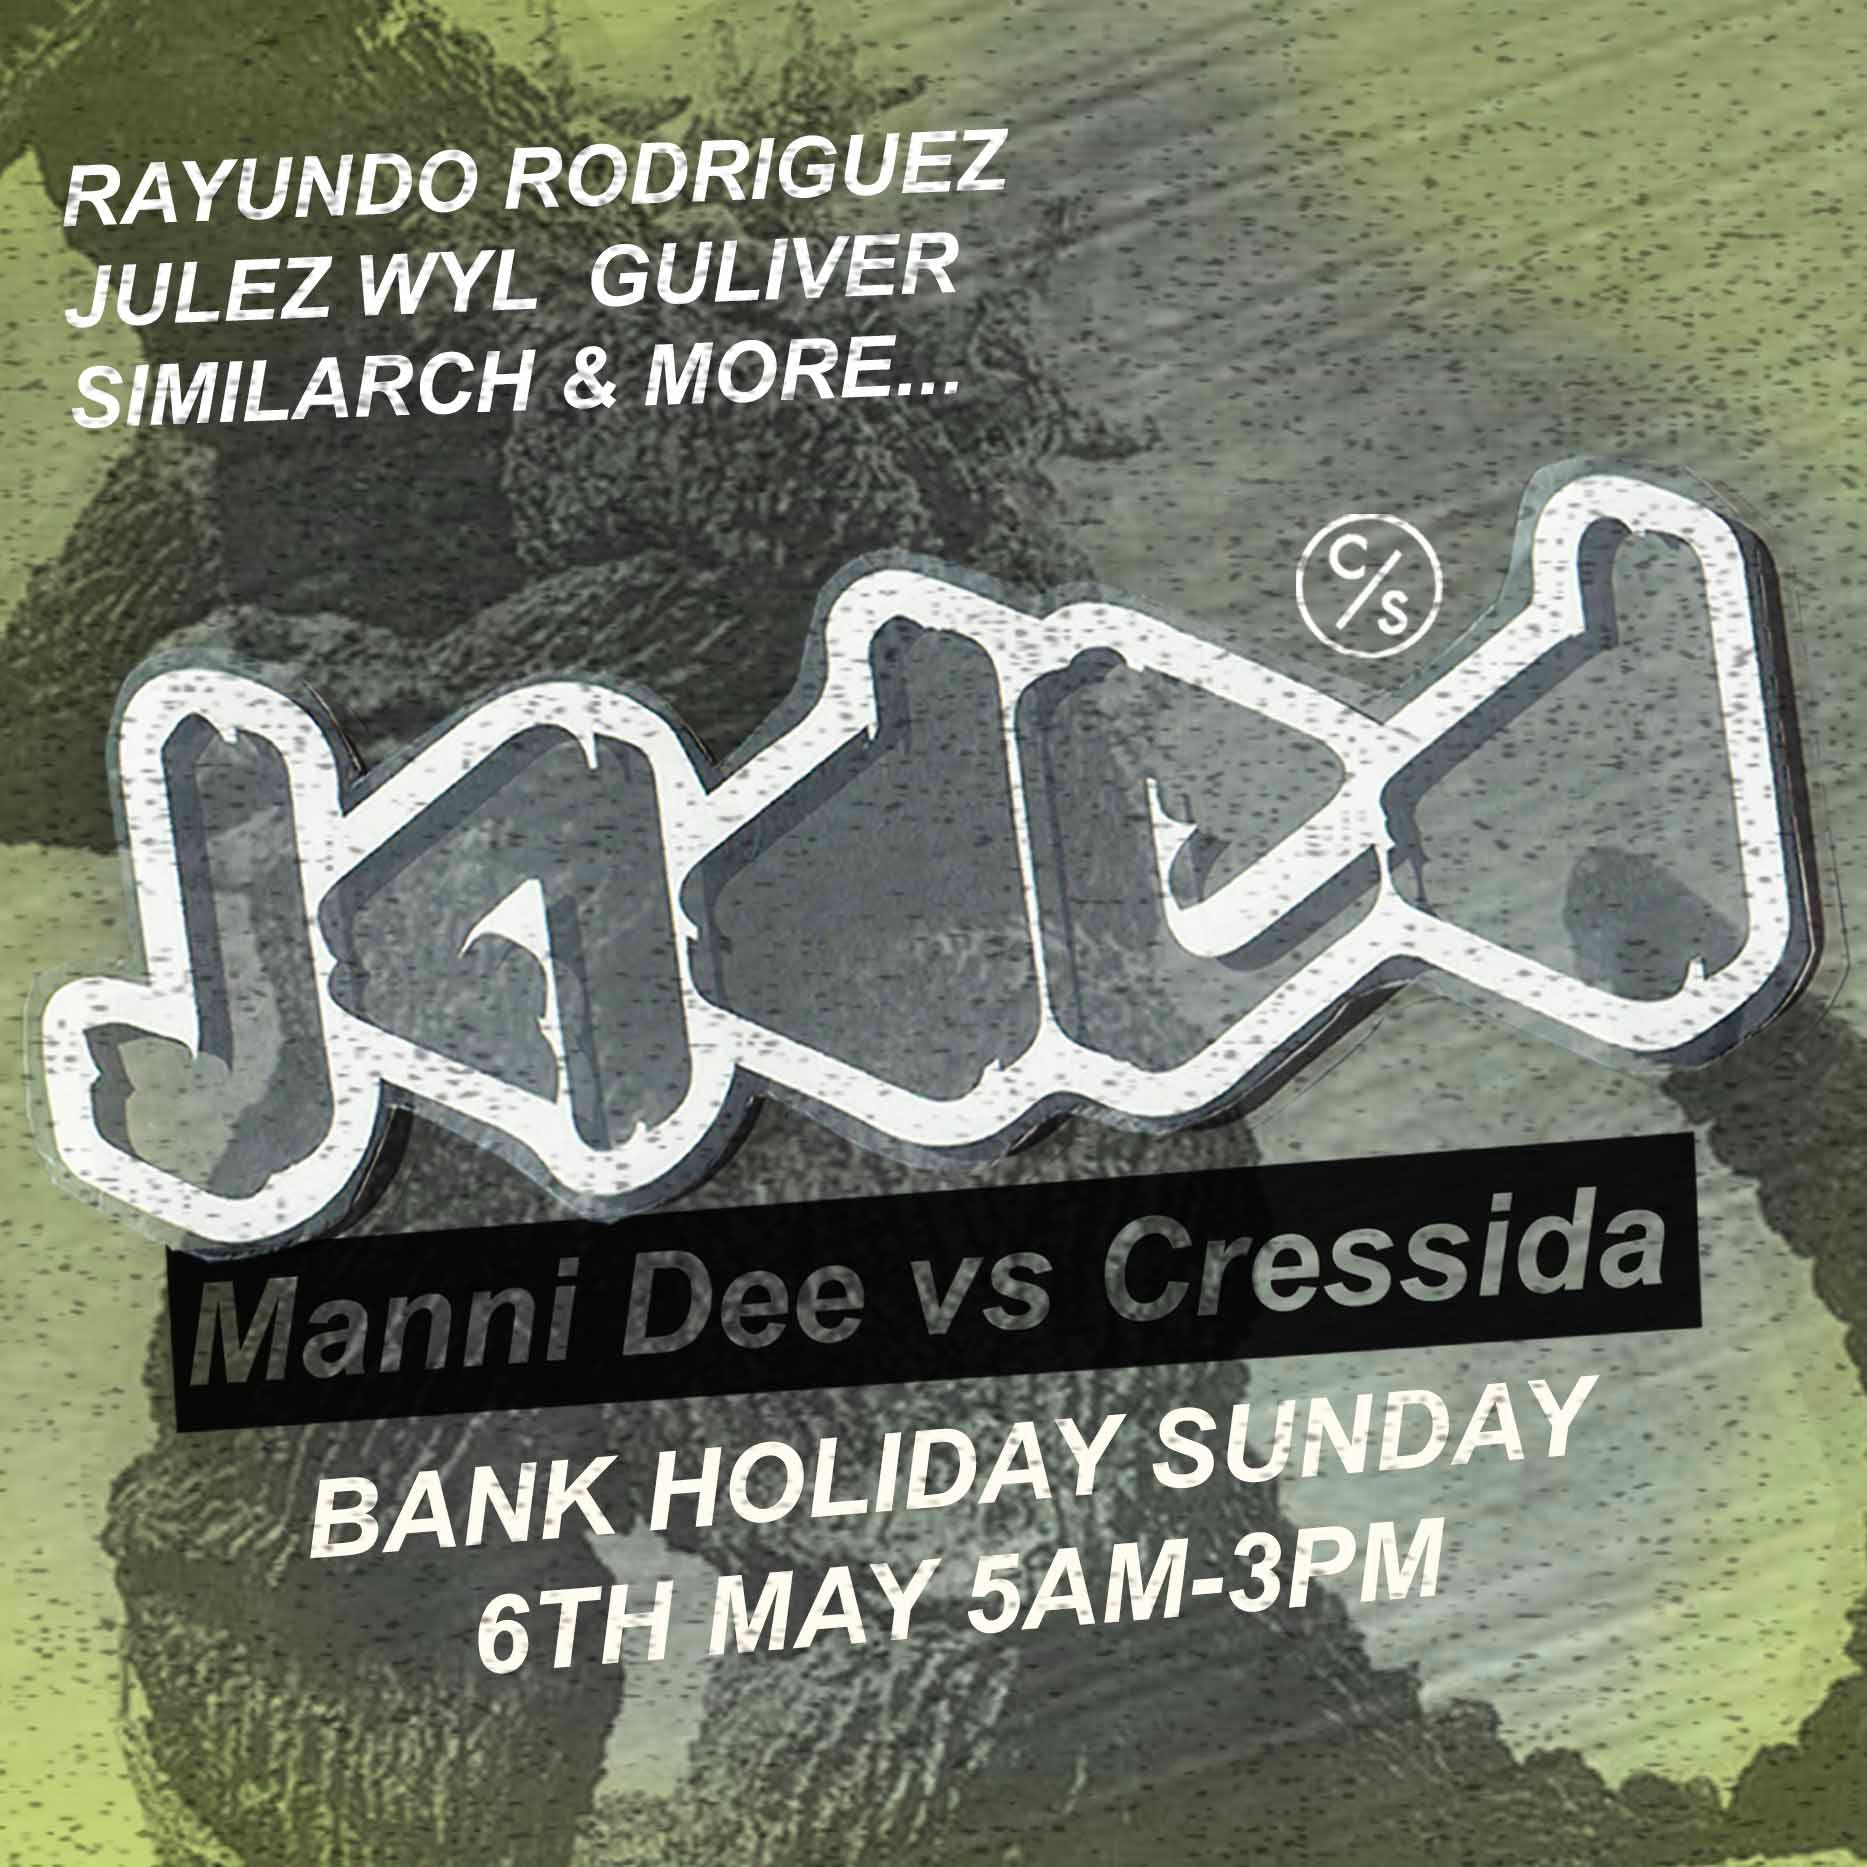 Bank Holiday Apocalypse: Manni Dee Vs Cressida